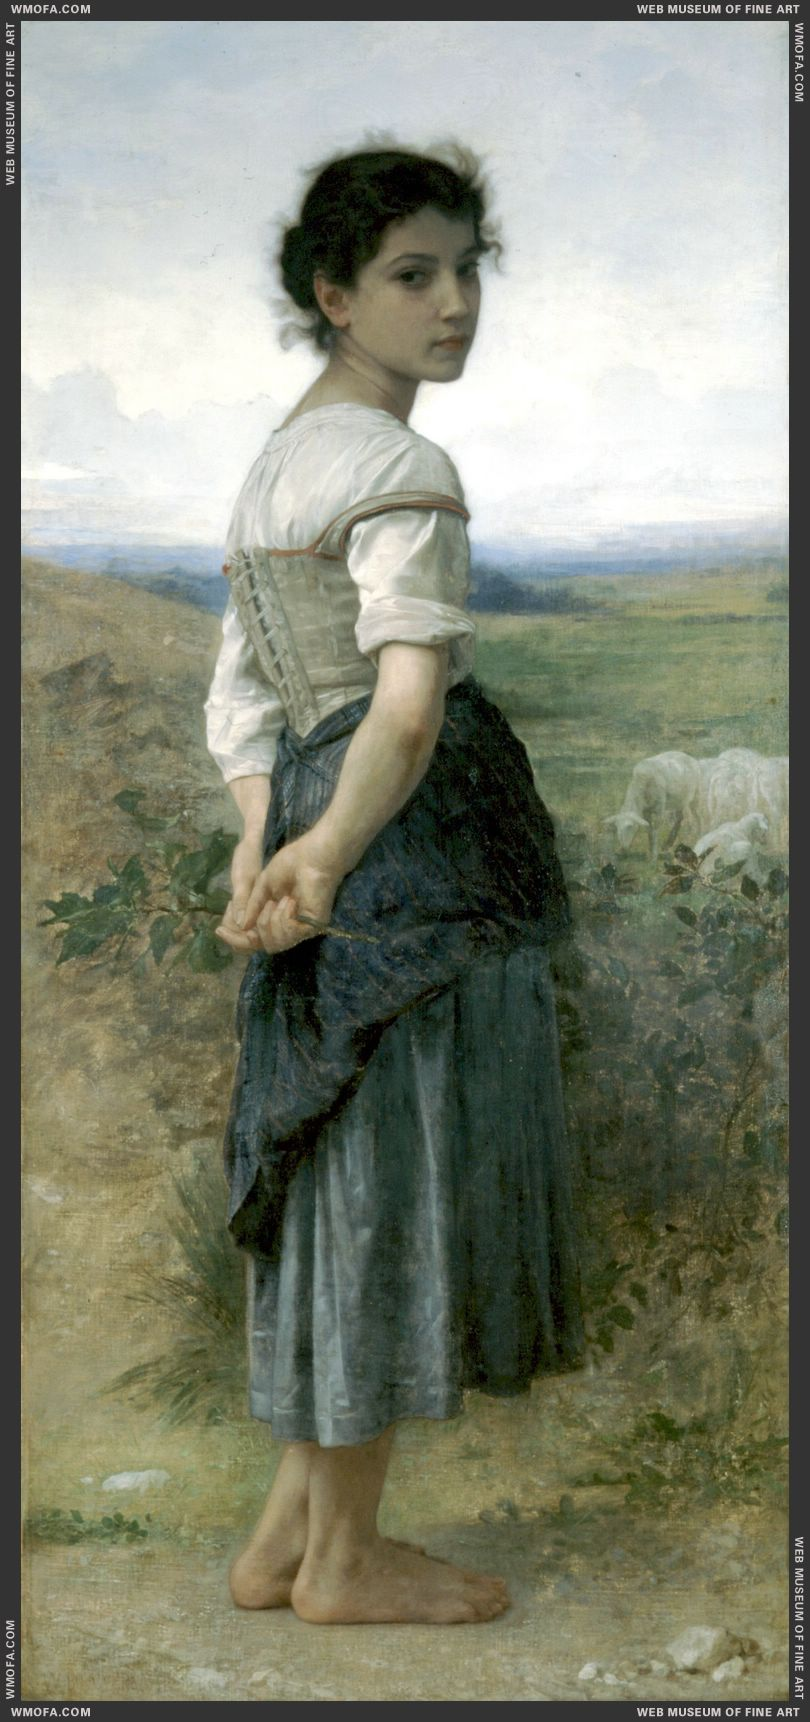 Jeune Bergere - Young Shepherdess 1885 by Bouguereau, William